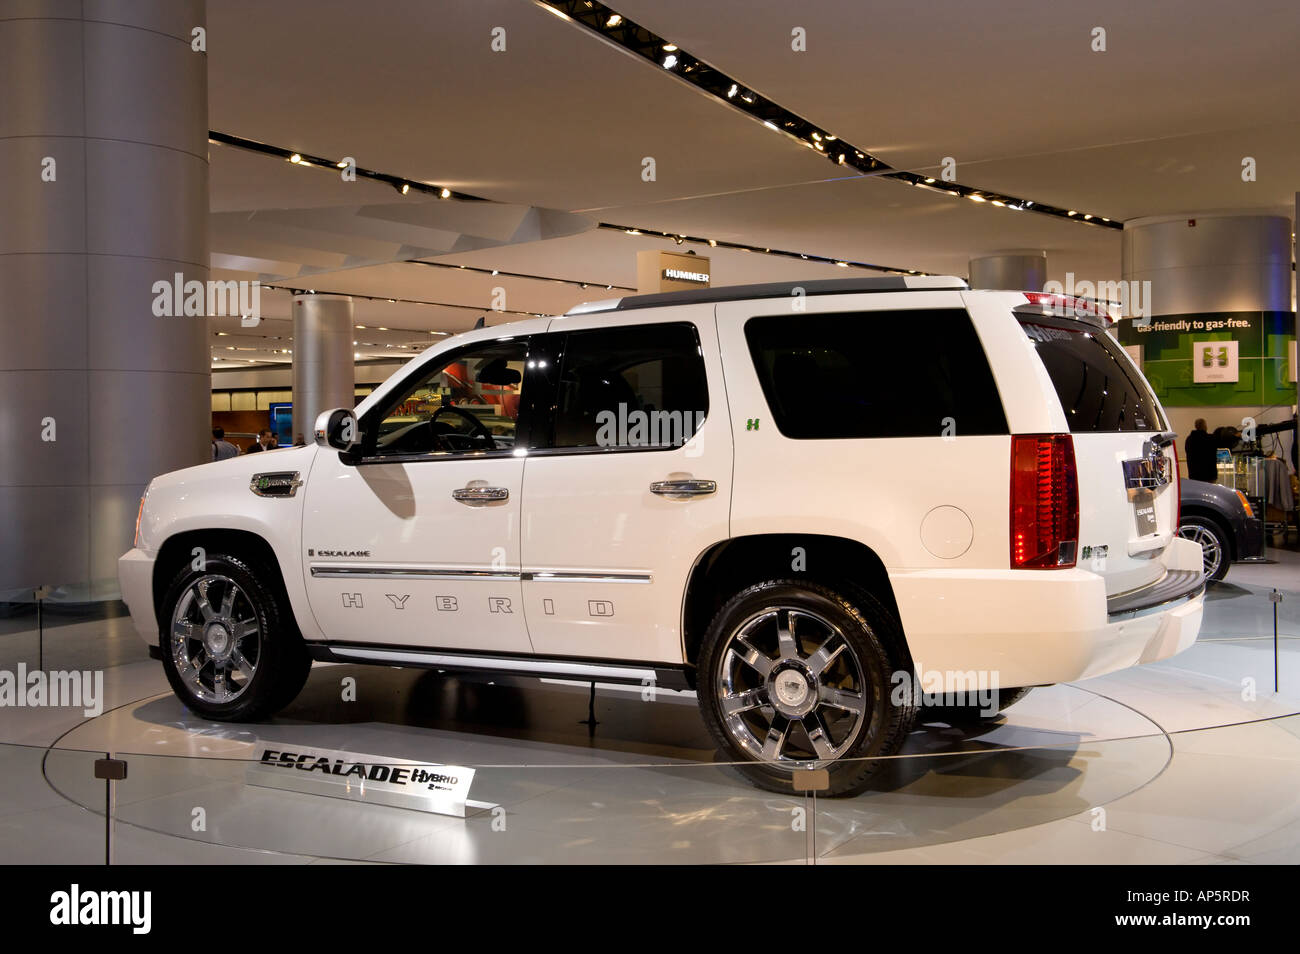 and l connection car photos review specs cadillac prices the overview ratings escalade